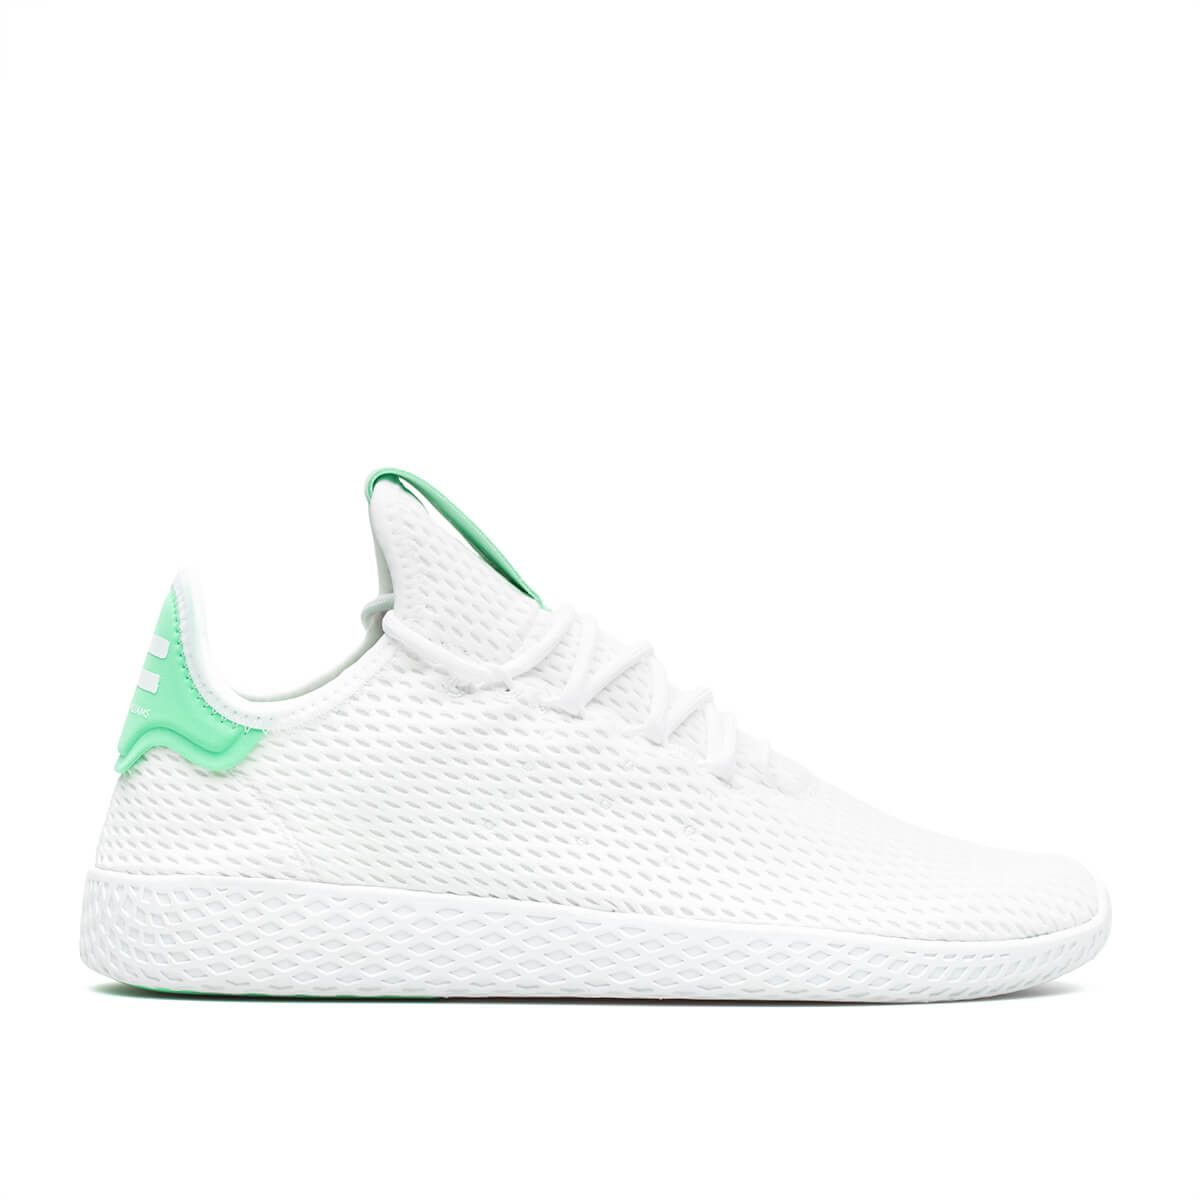 Pw Tennis Hu With Images Adidas Men